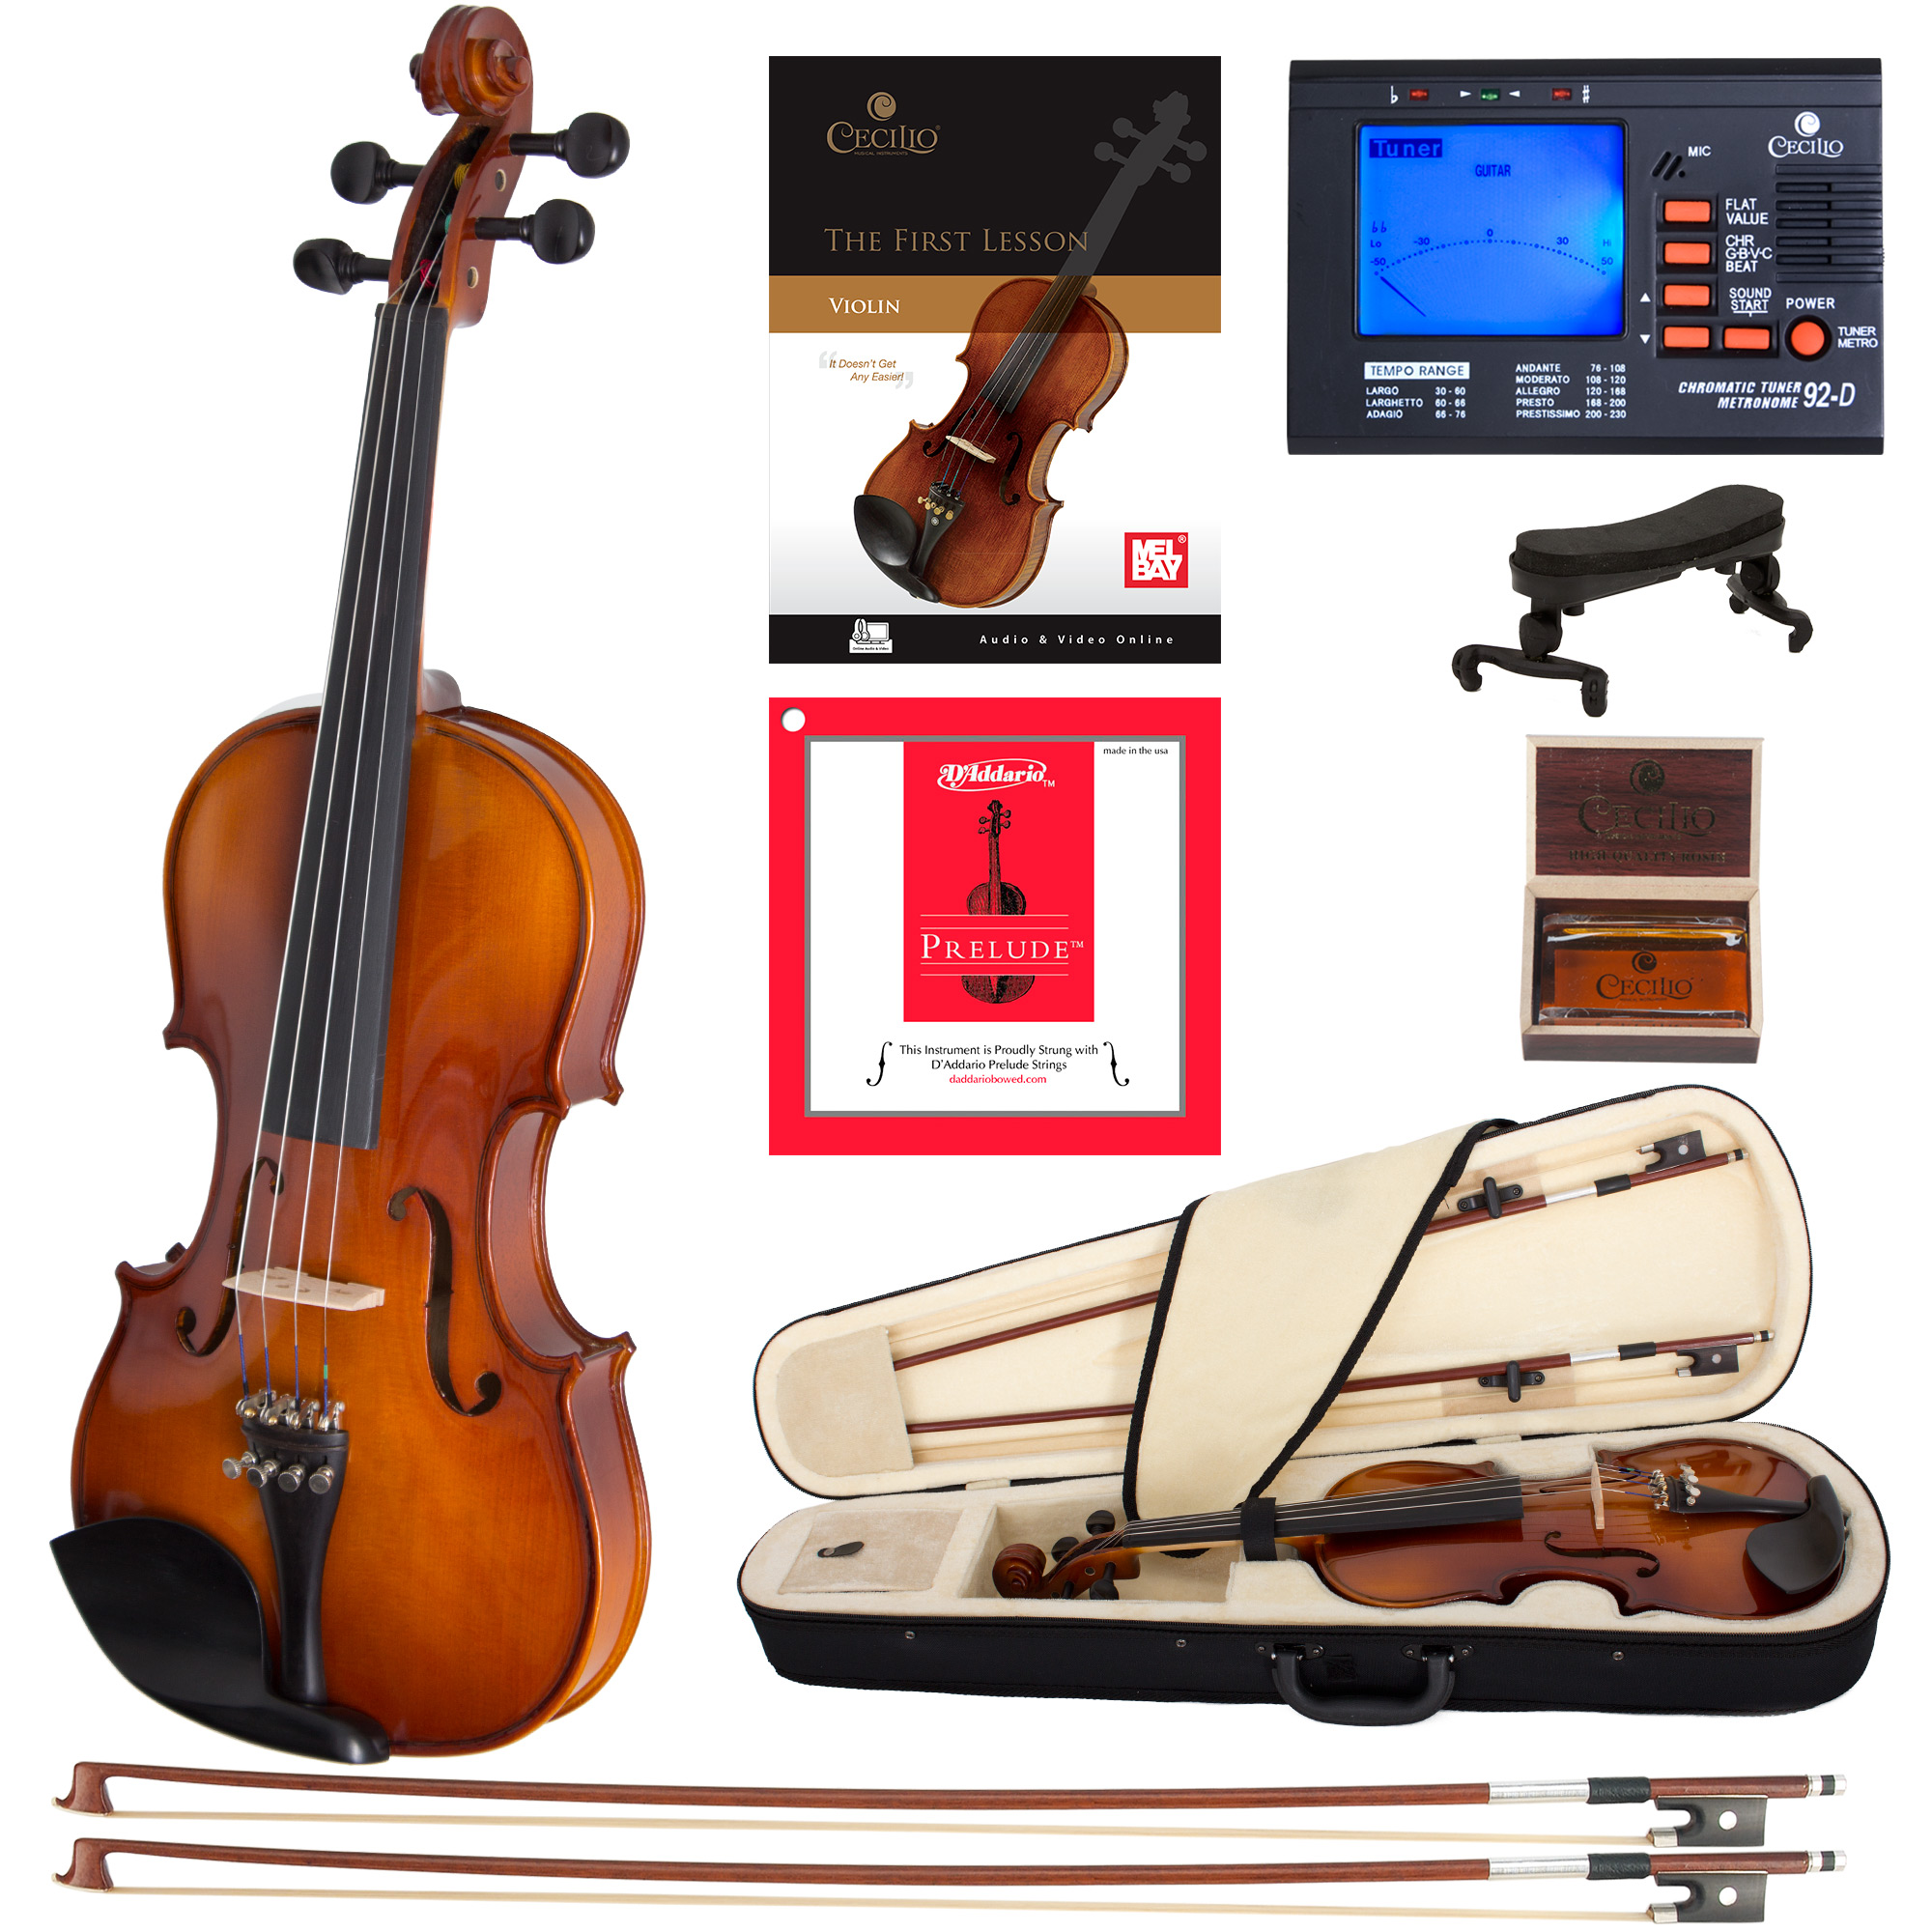 Cecilio Full Size 4/4 CVN-300 Ebony Fitted Solid Wood Violin w/D'Addario Prelude Strings, Lesson Book, Shoulder Rest and More